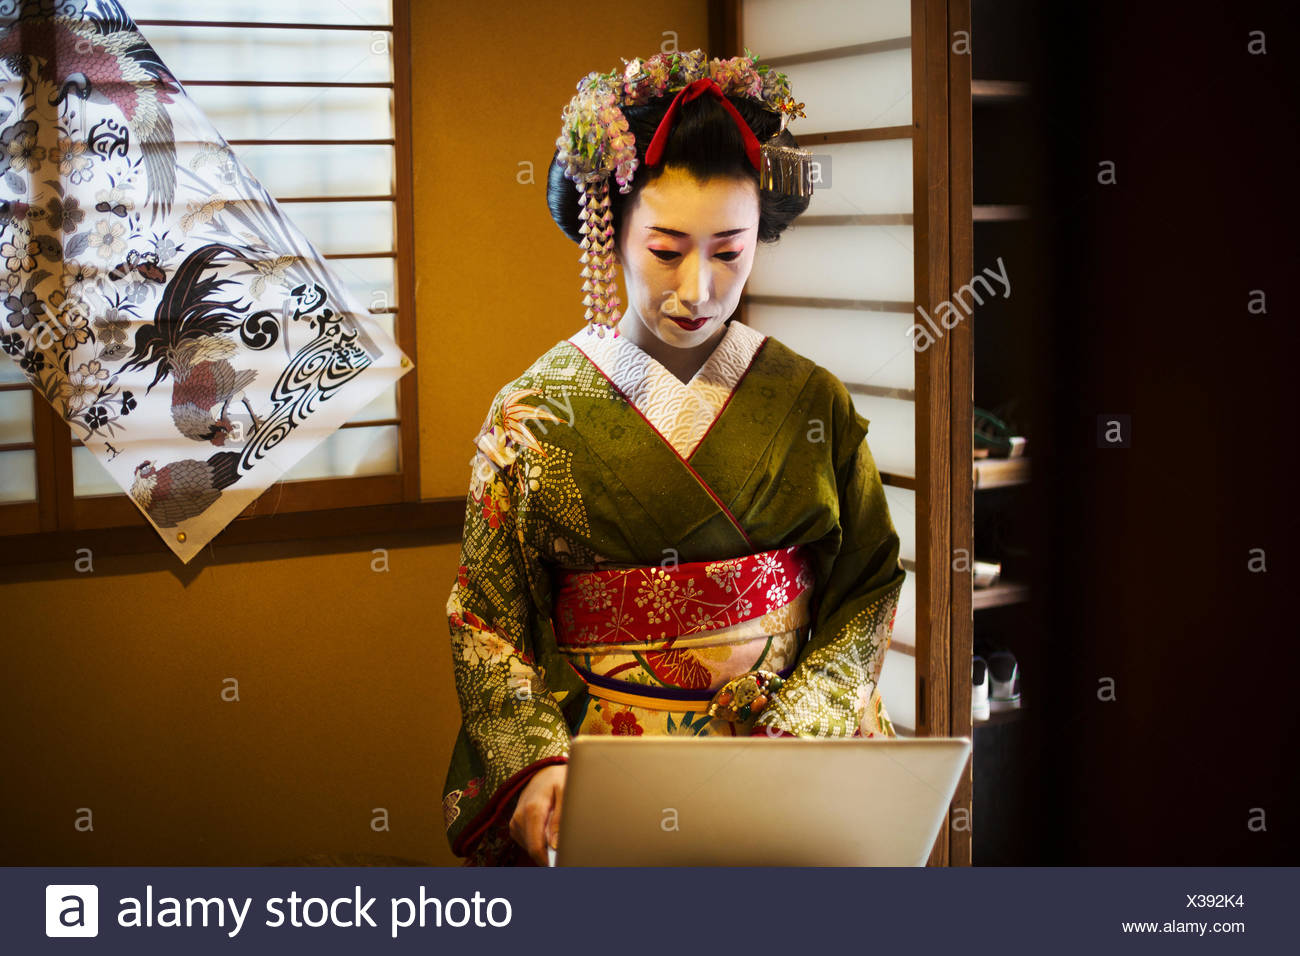 A Woman Dressed In The Traditional Geisha Style Wearing Kimono And Obi With